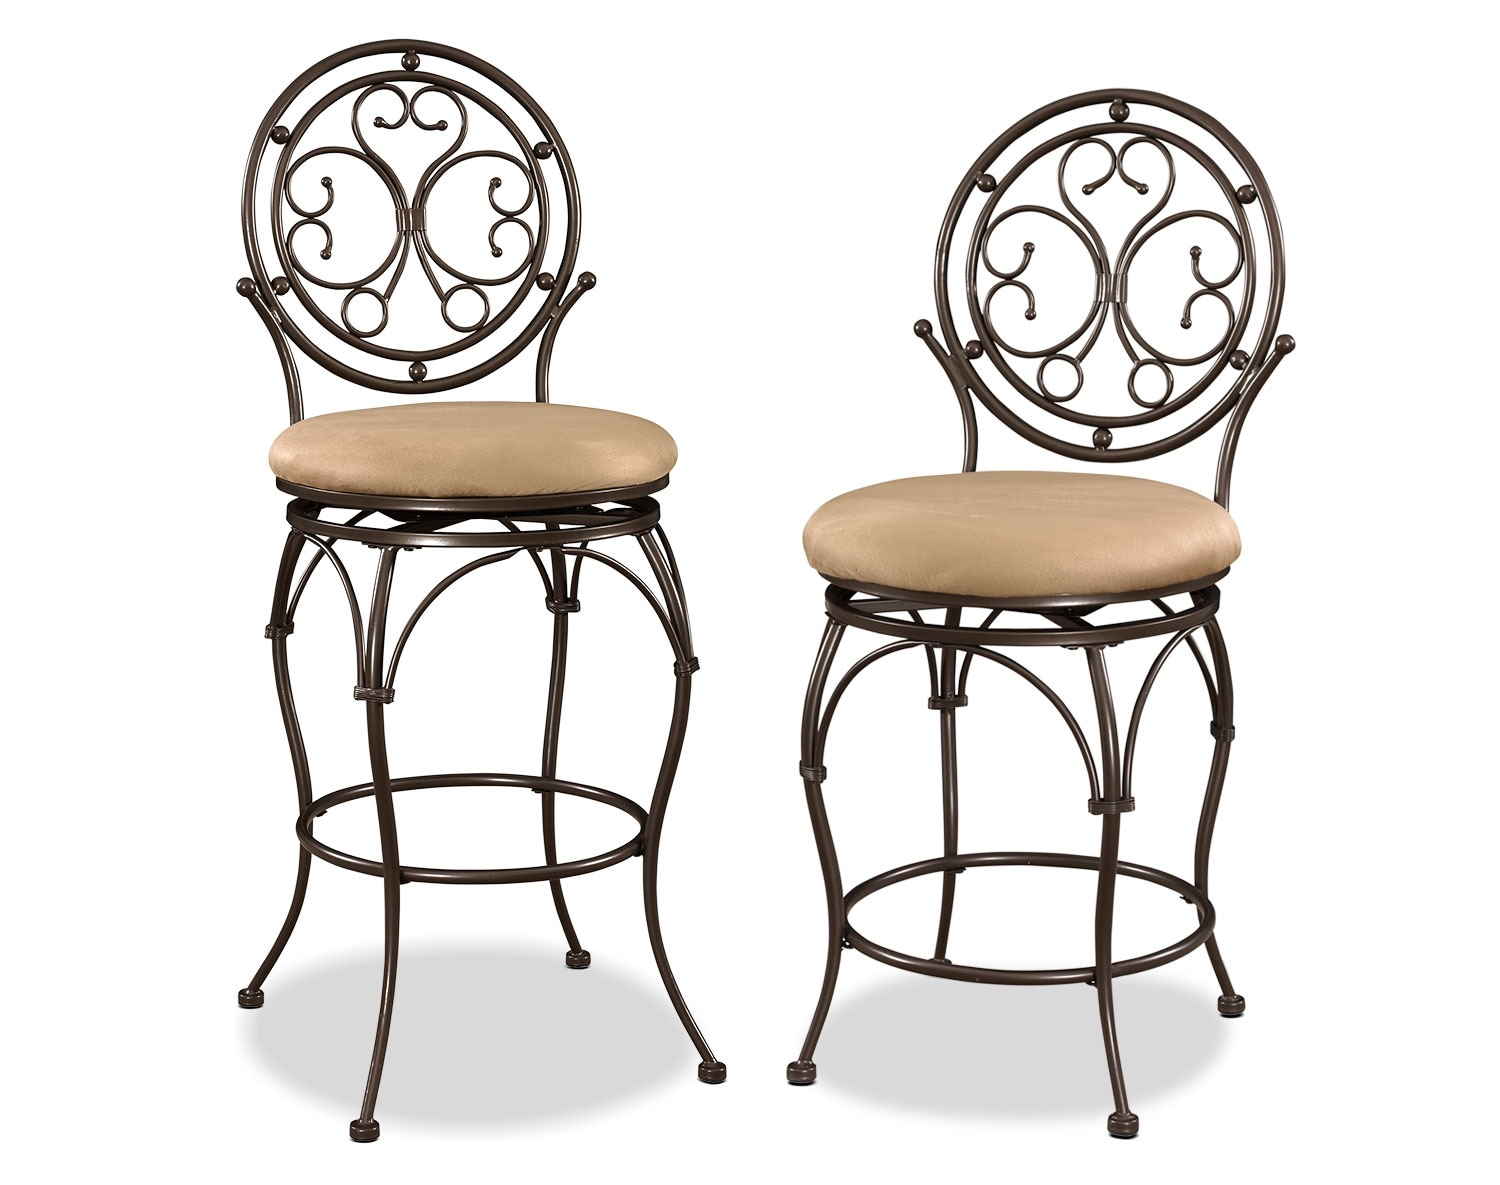 The Laurel Barstool Collection